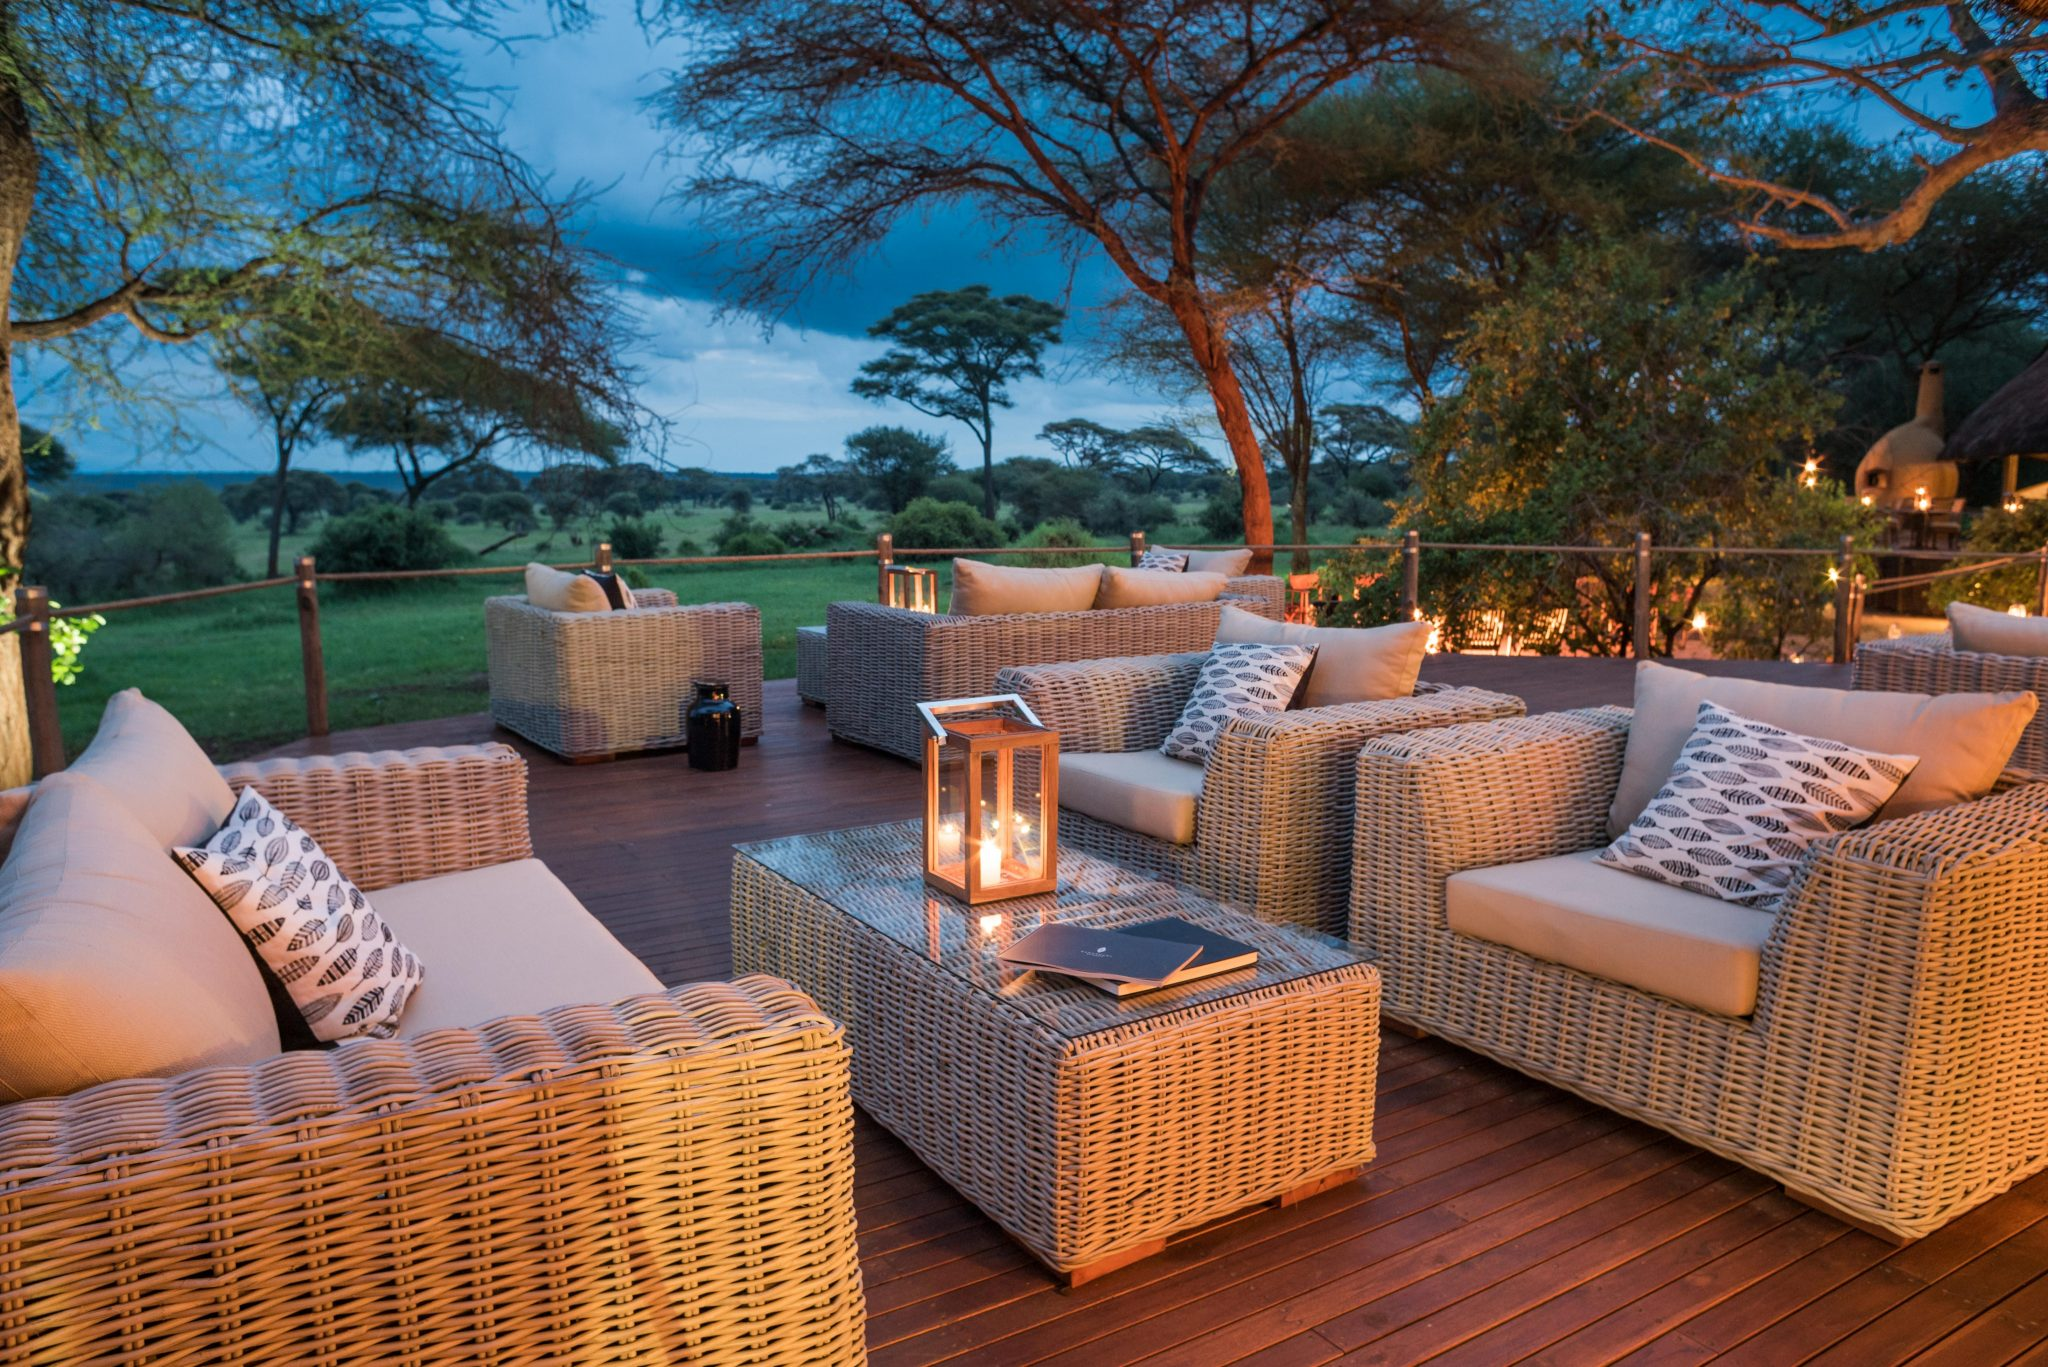 Luxury Sanctuary Retreats 8 night Wildlife Safari Tanzania – Moon